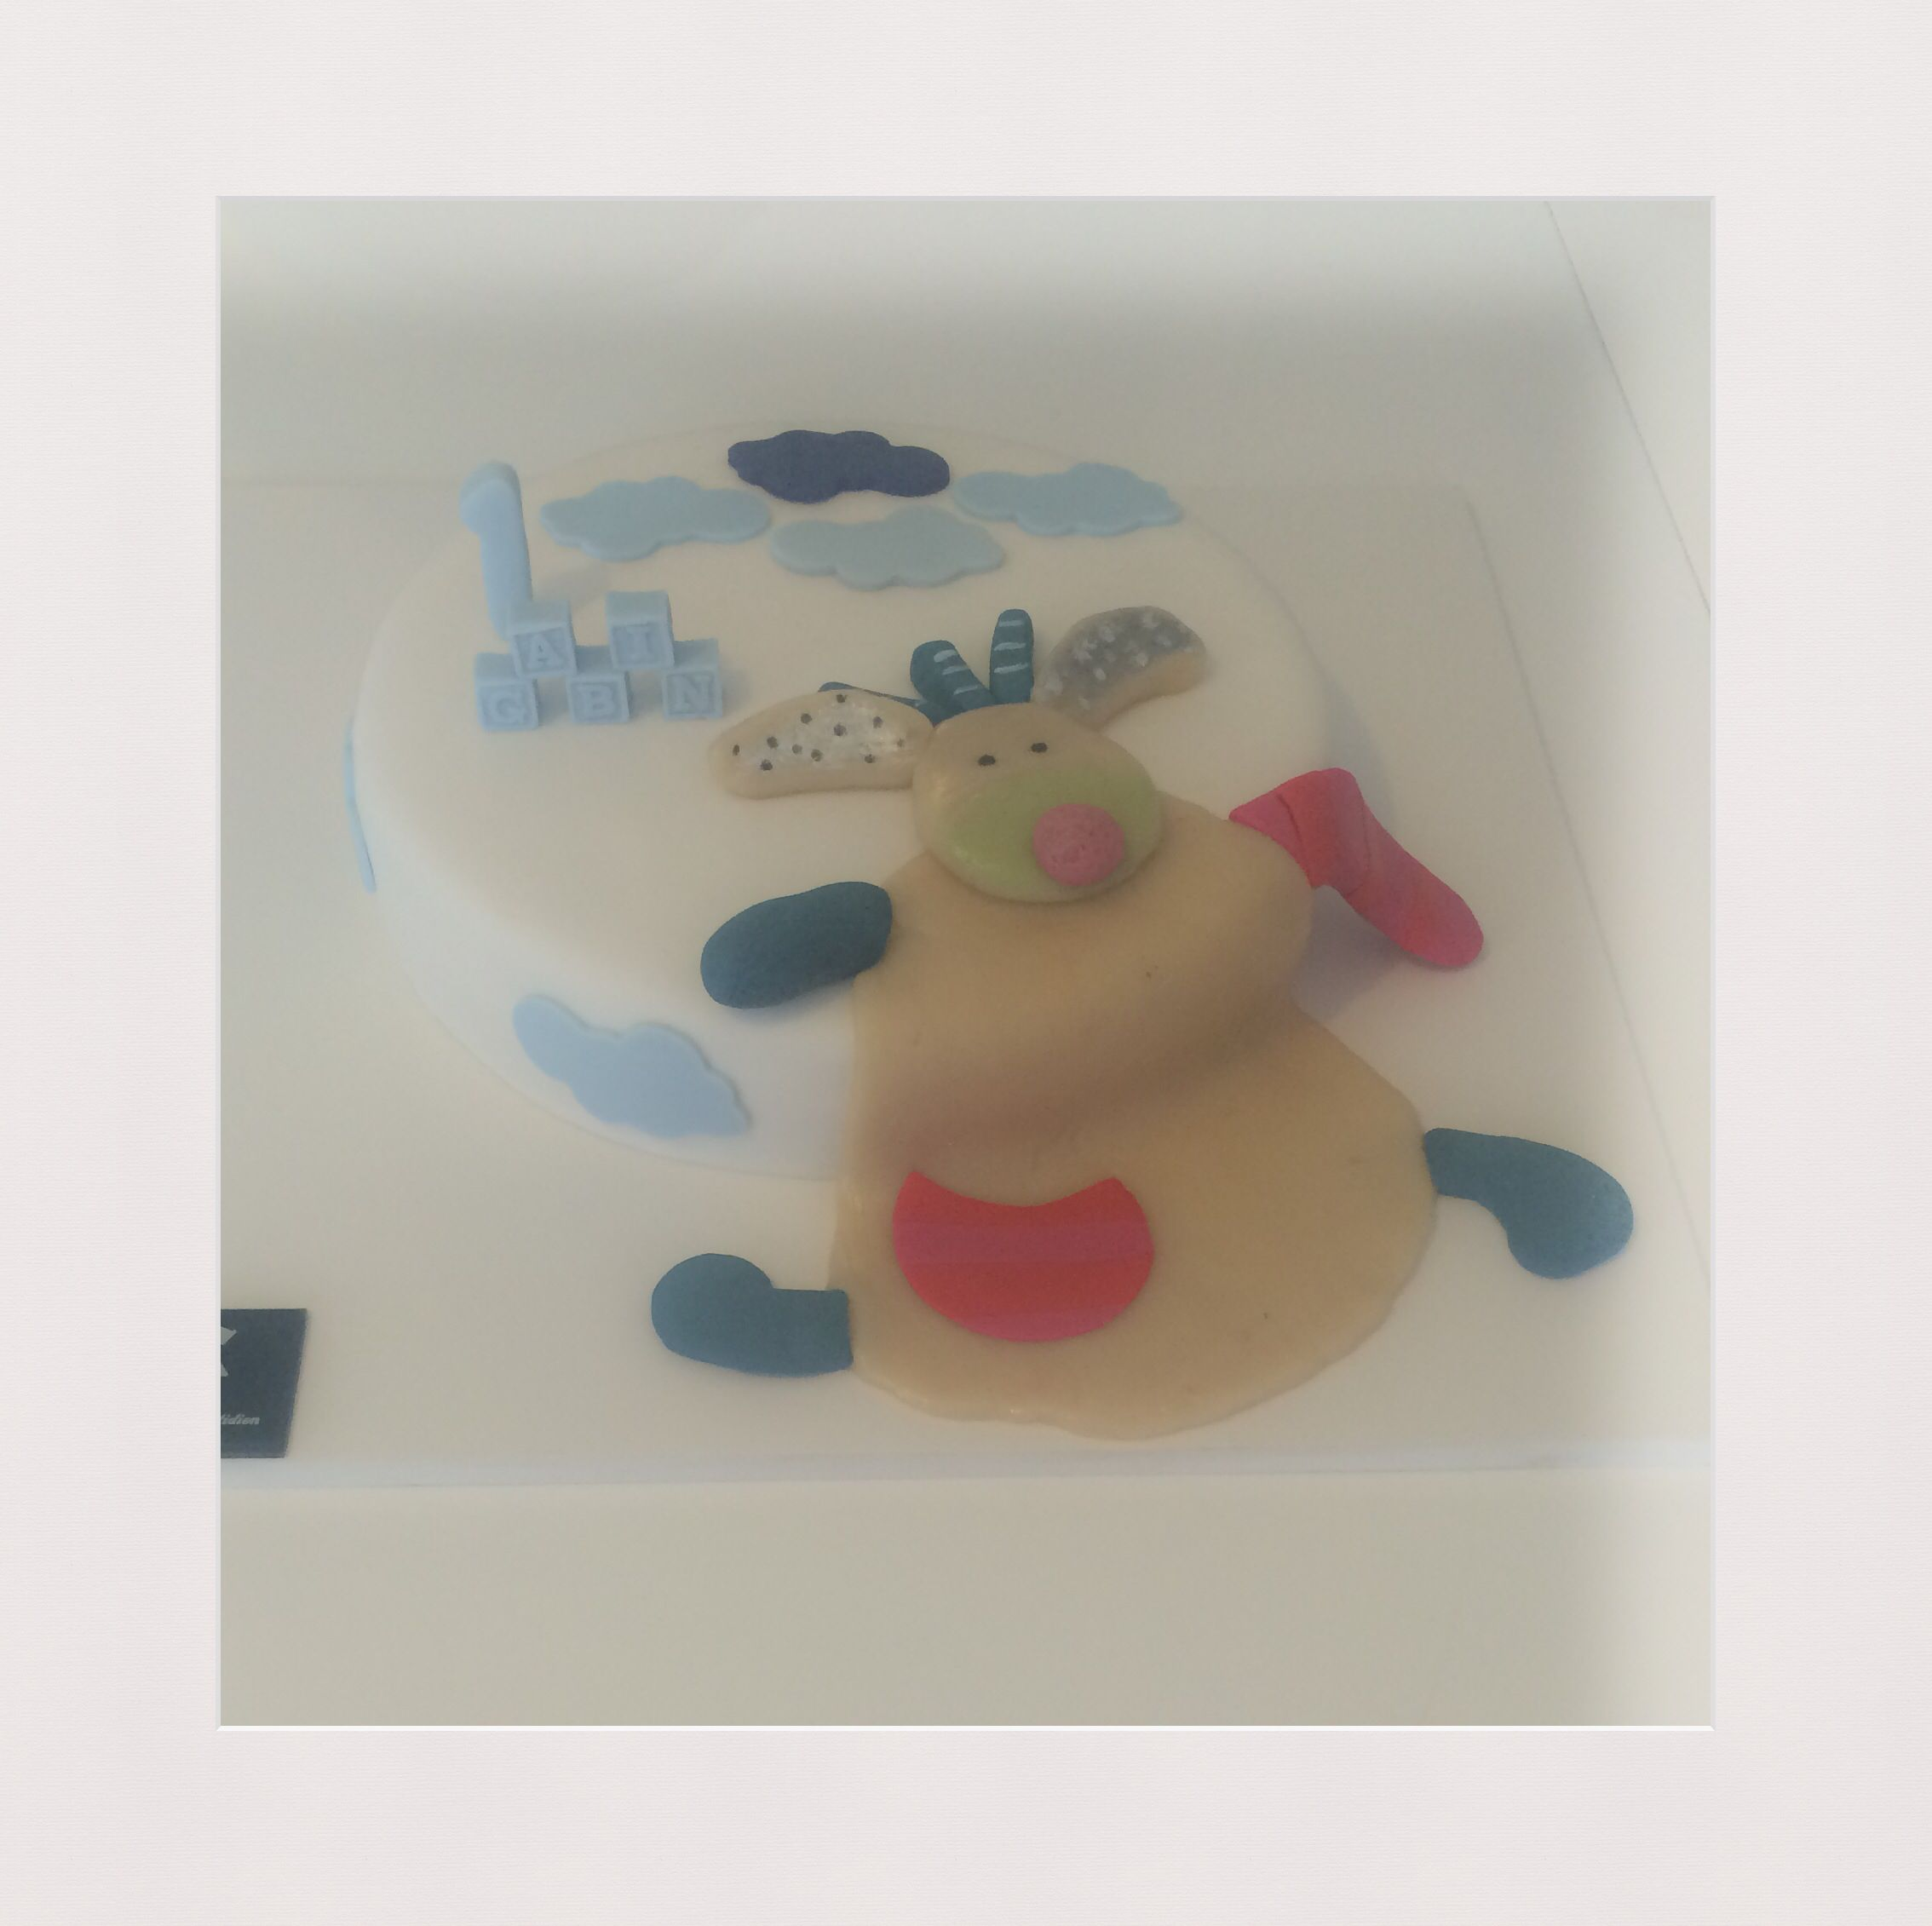 Doudou cake by VIC